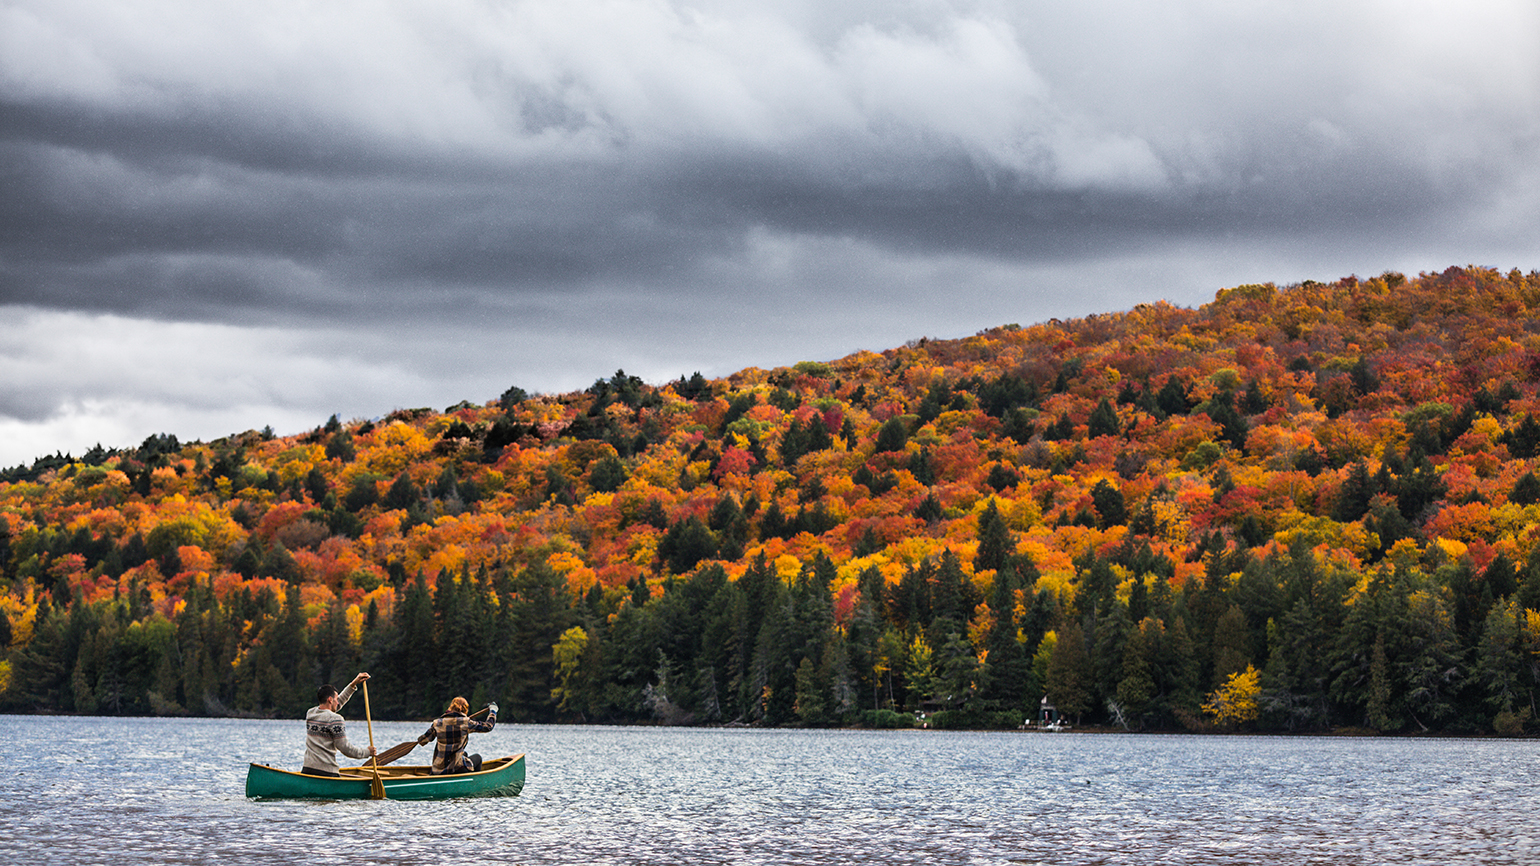 A couple in a canoe on a mountain lake in autumn